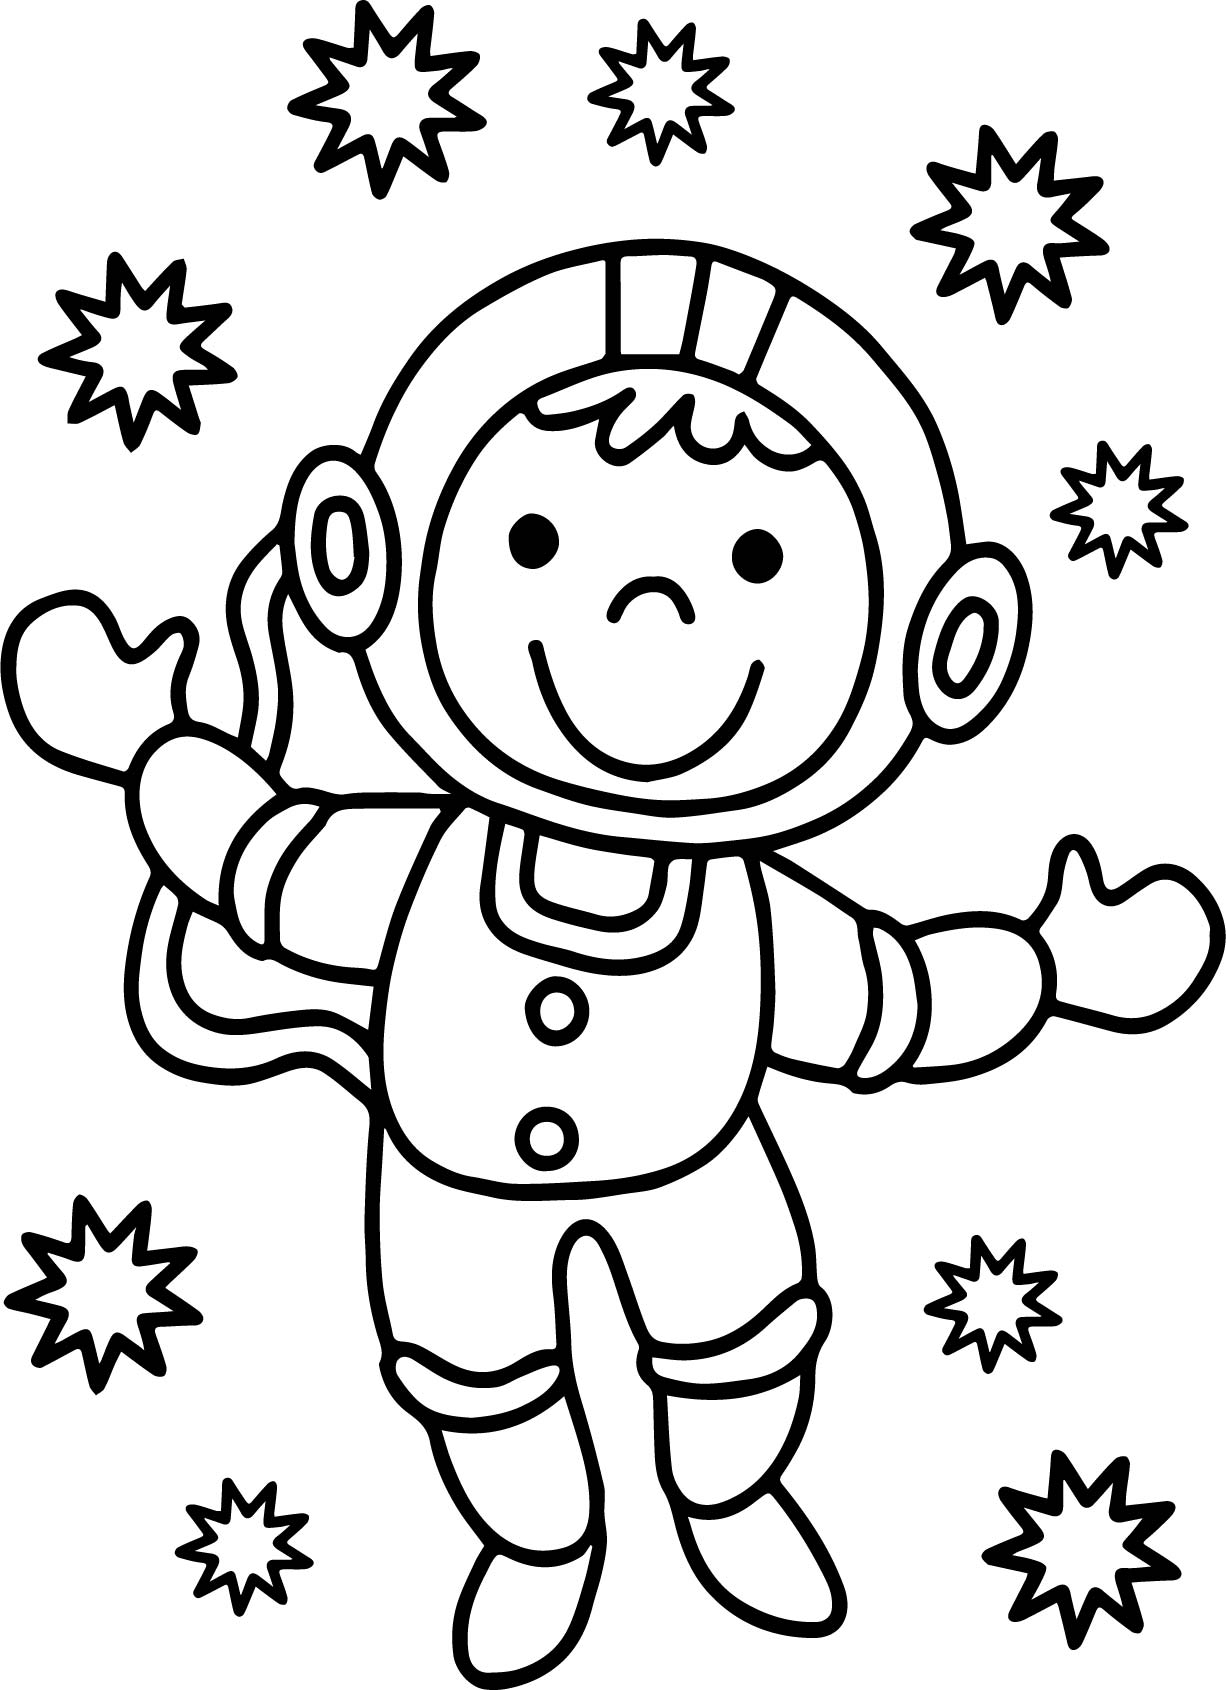 astronaut body coloring page spaceman coloring pages at getdrawings free download coloring body page astronaut